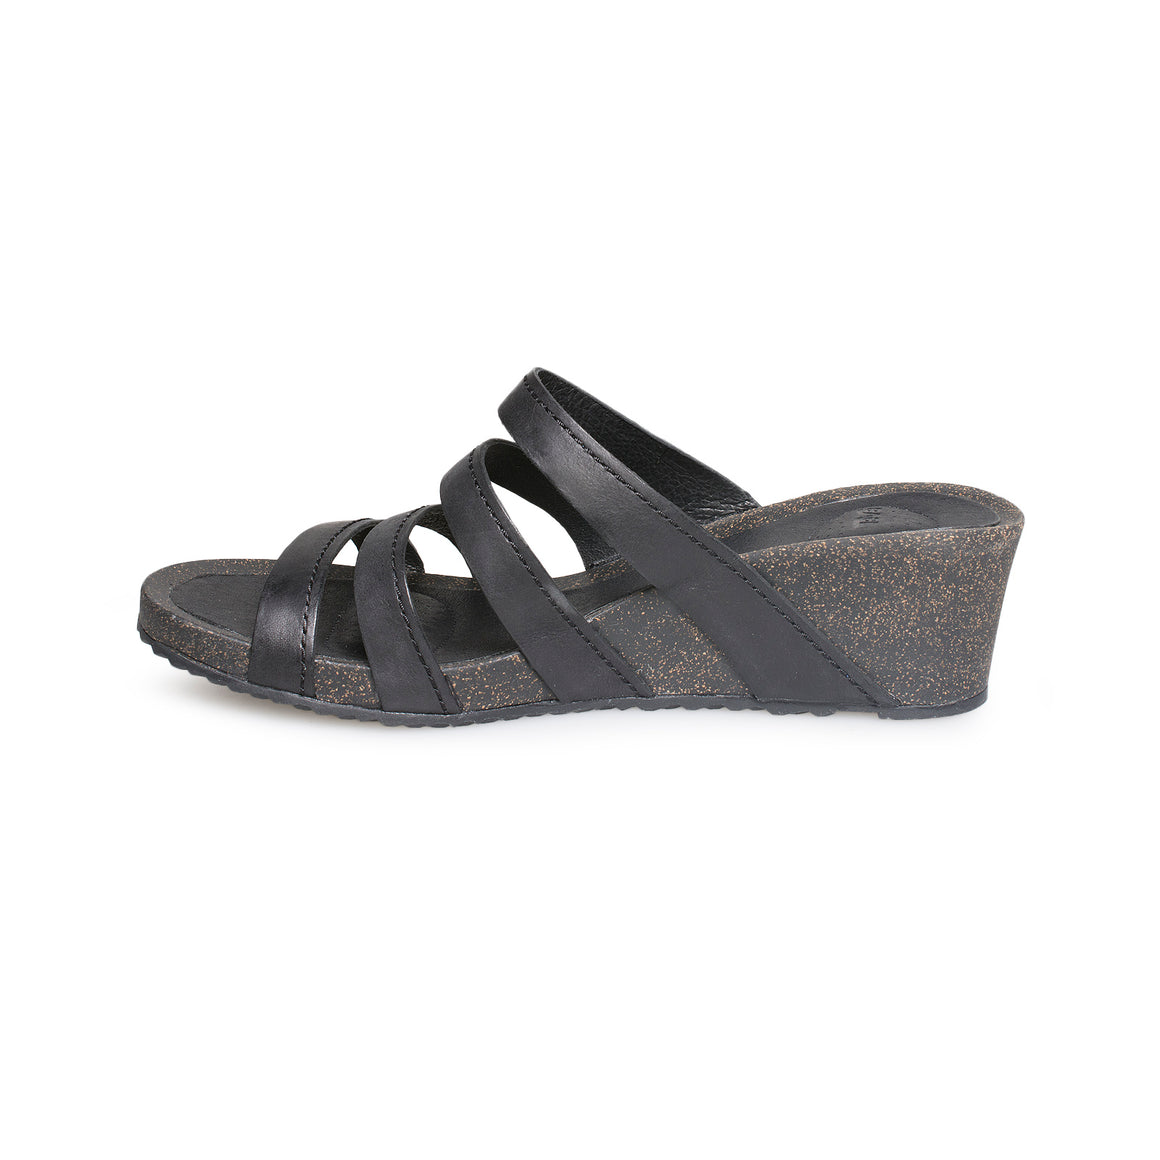 Teva Ysidro Slide Wedge Black Sandals - Women's